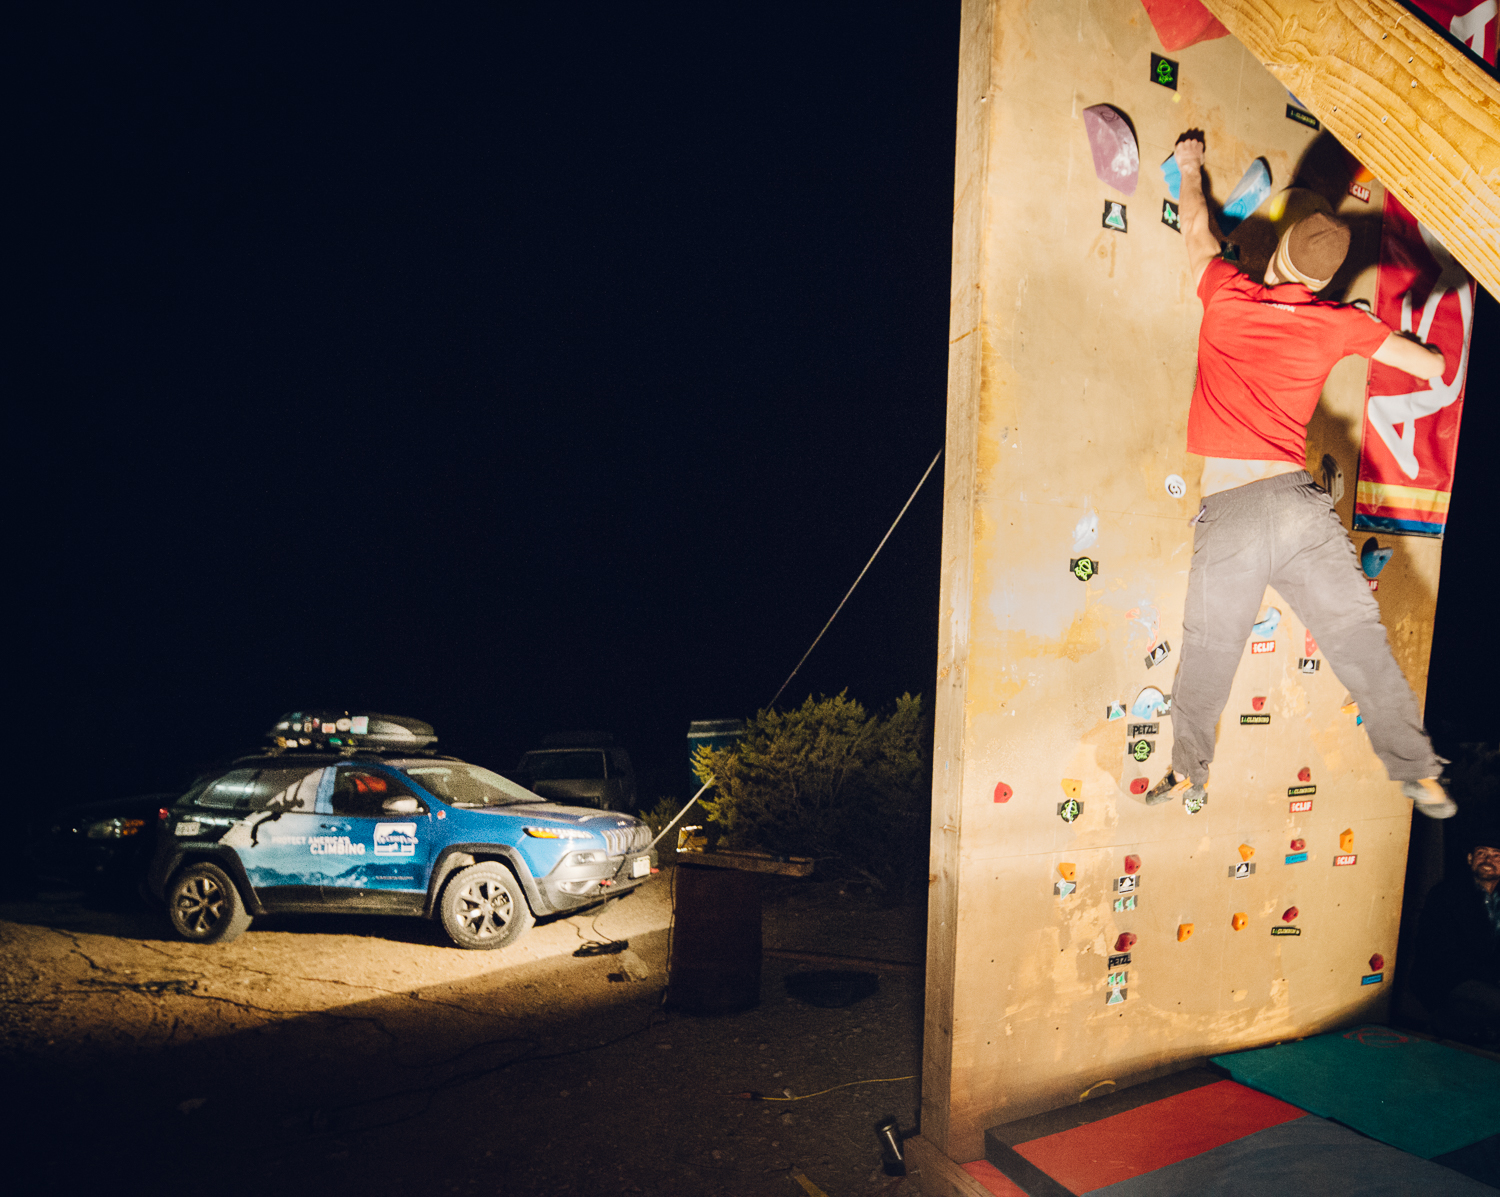 Access Fund's Conservation Team's JEEP is a rear anchor for the Dyno-Wall during the evening's competition. Michael Lim Photography 2015 ©